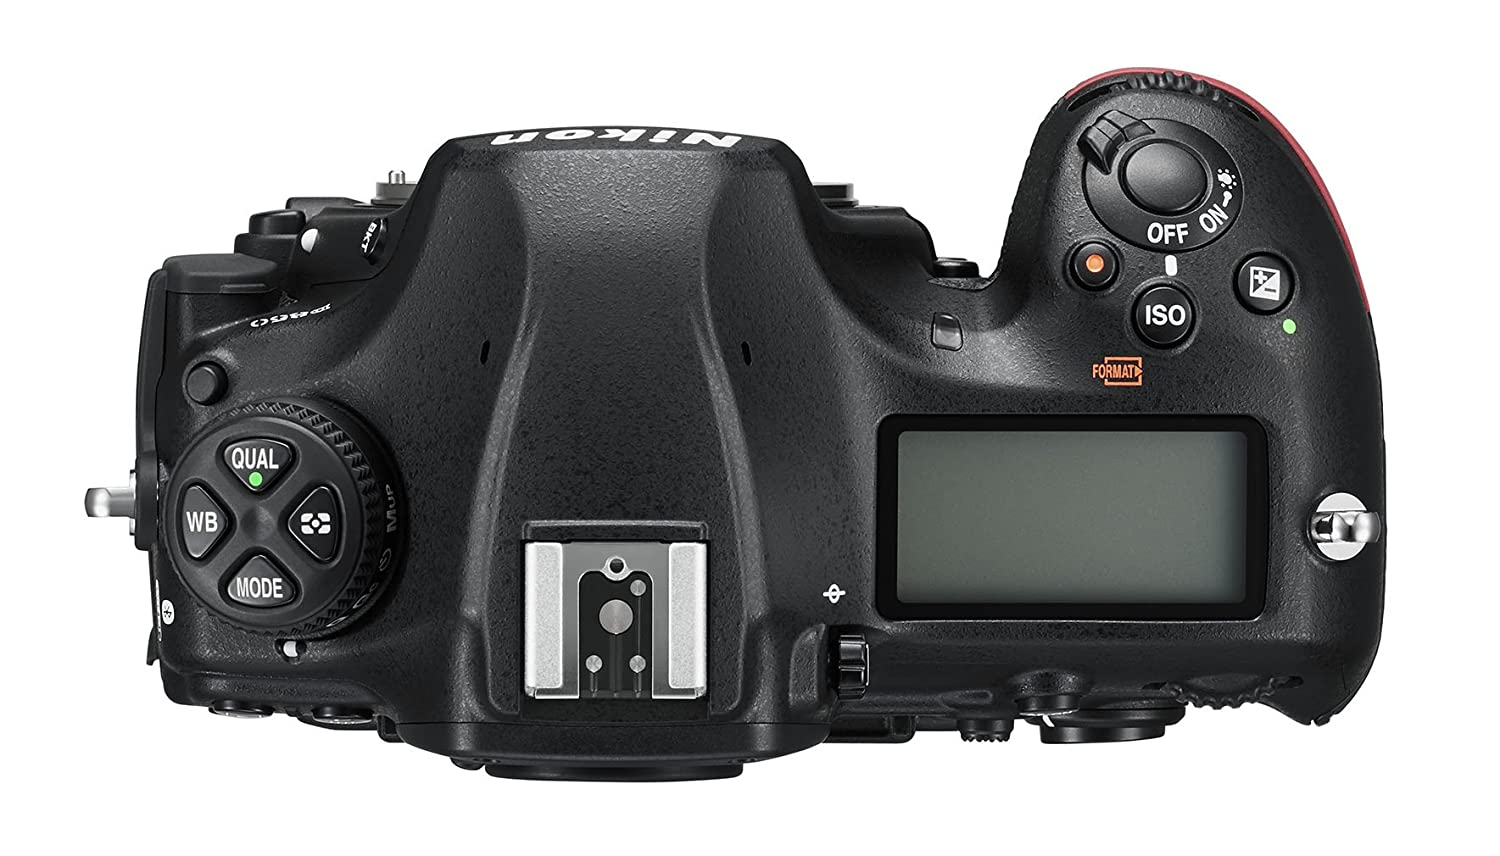 Best Dslr Camera Deals 2019 For Experts - Ayaz Hashmi Official. All these cameras are for experts who do a quality based photography. dslr camera,  best dslr camera, photography dslr camera, canon dslr camera, nikon dslr camera.